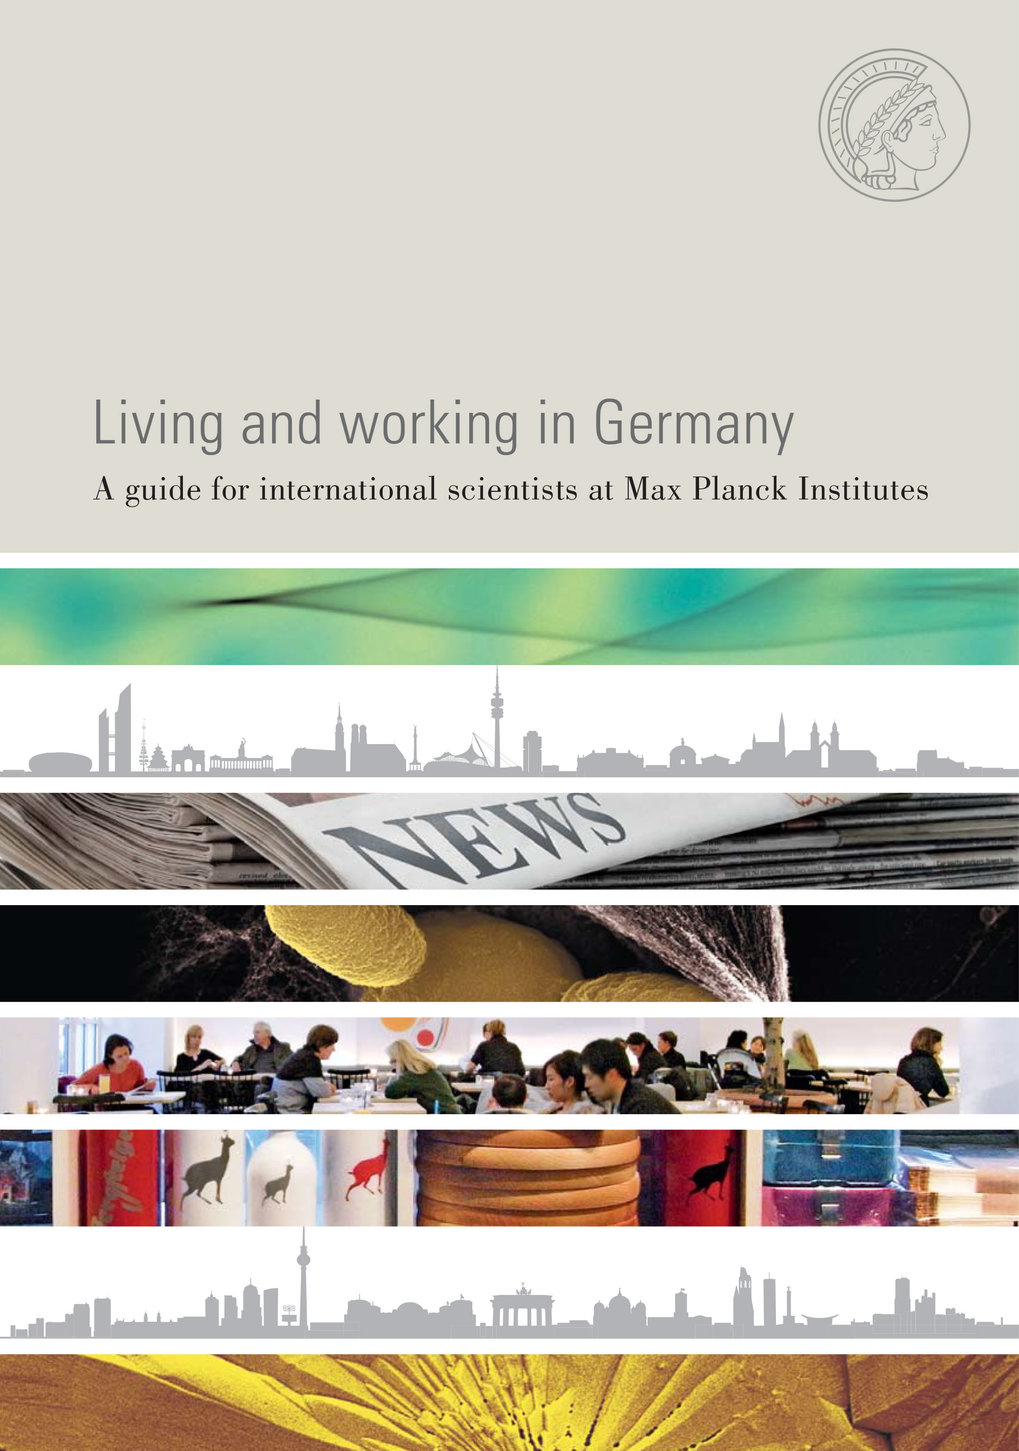 Living and working in Germany (.pdf, 2.4 MB)